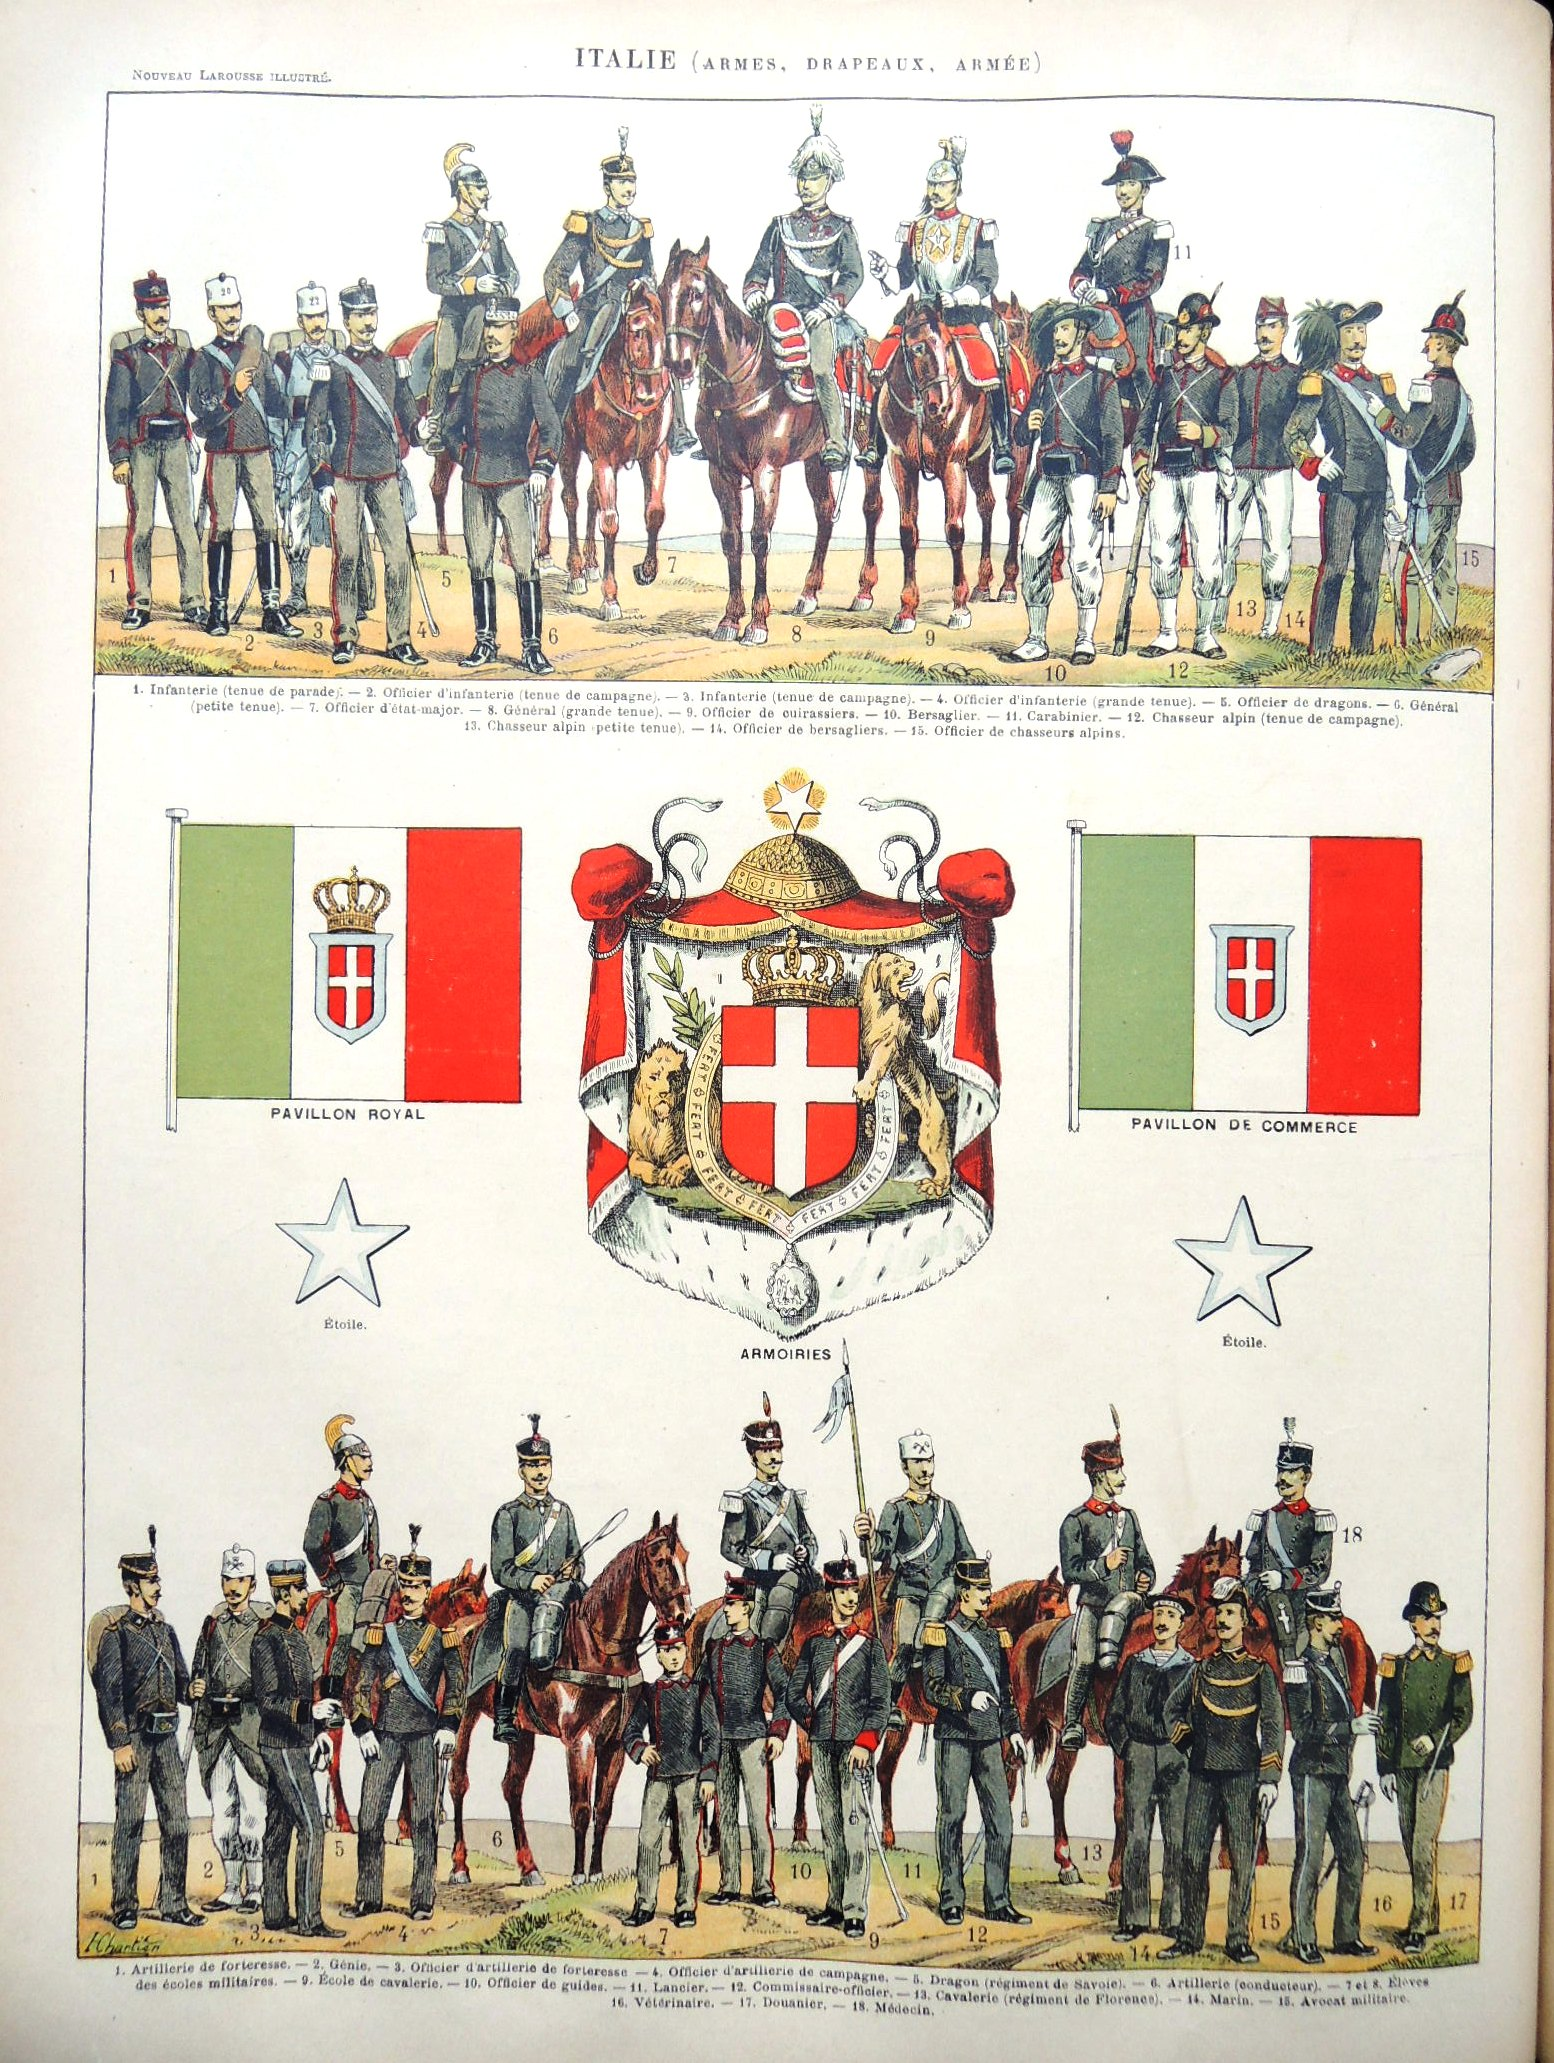 The Forces Italian Wikipedia Of Uniforms Armed m0OnyvwN8P